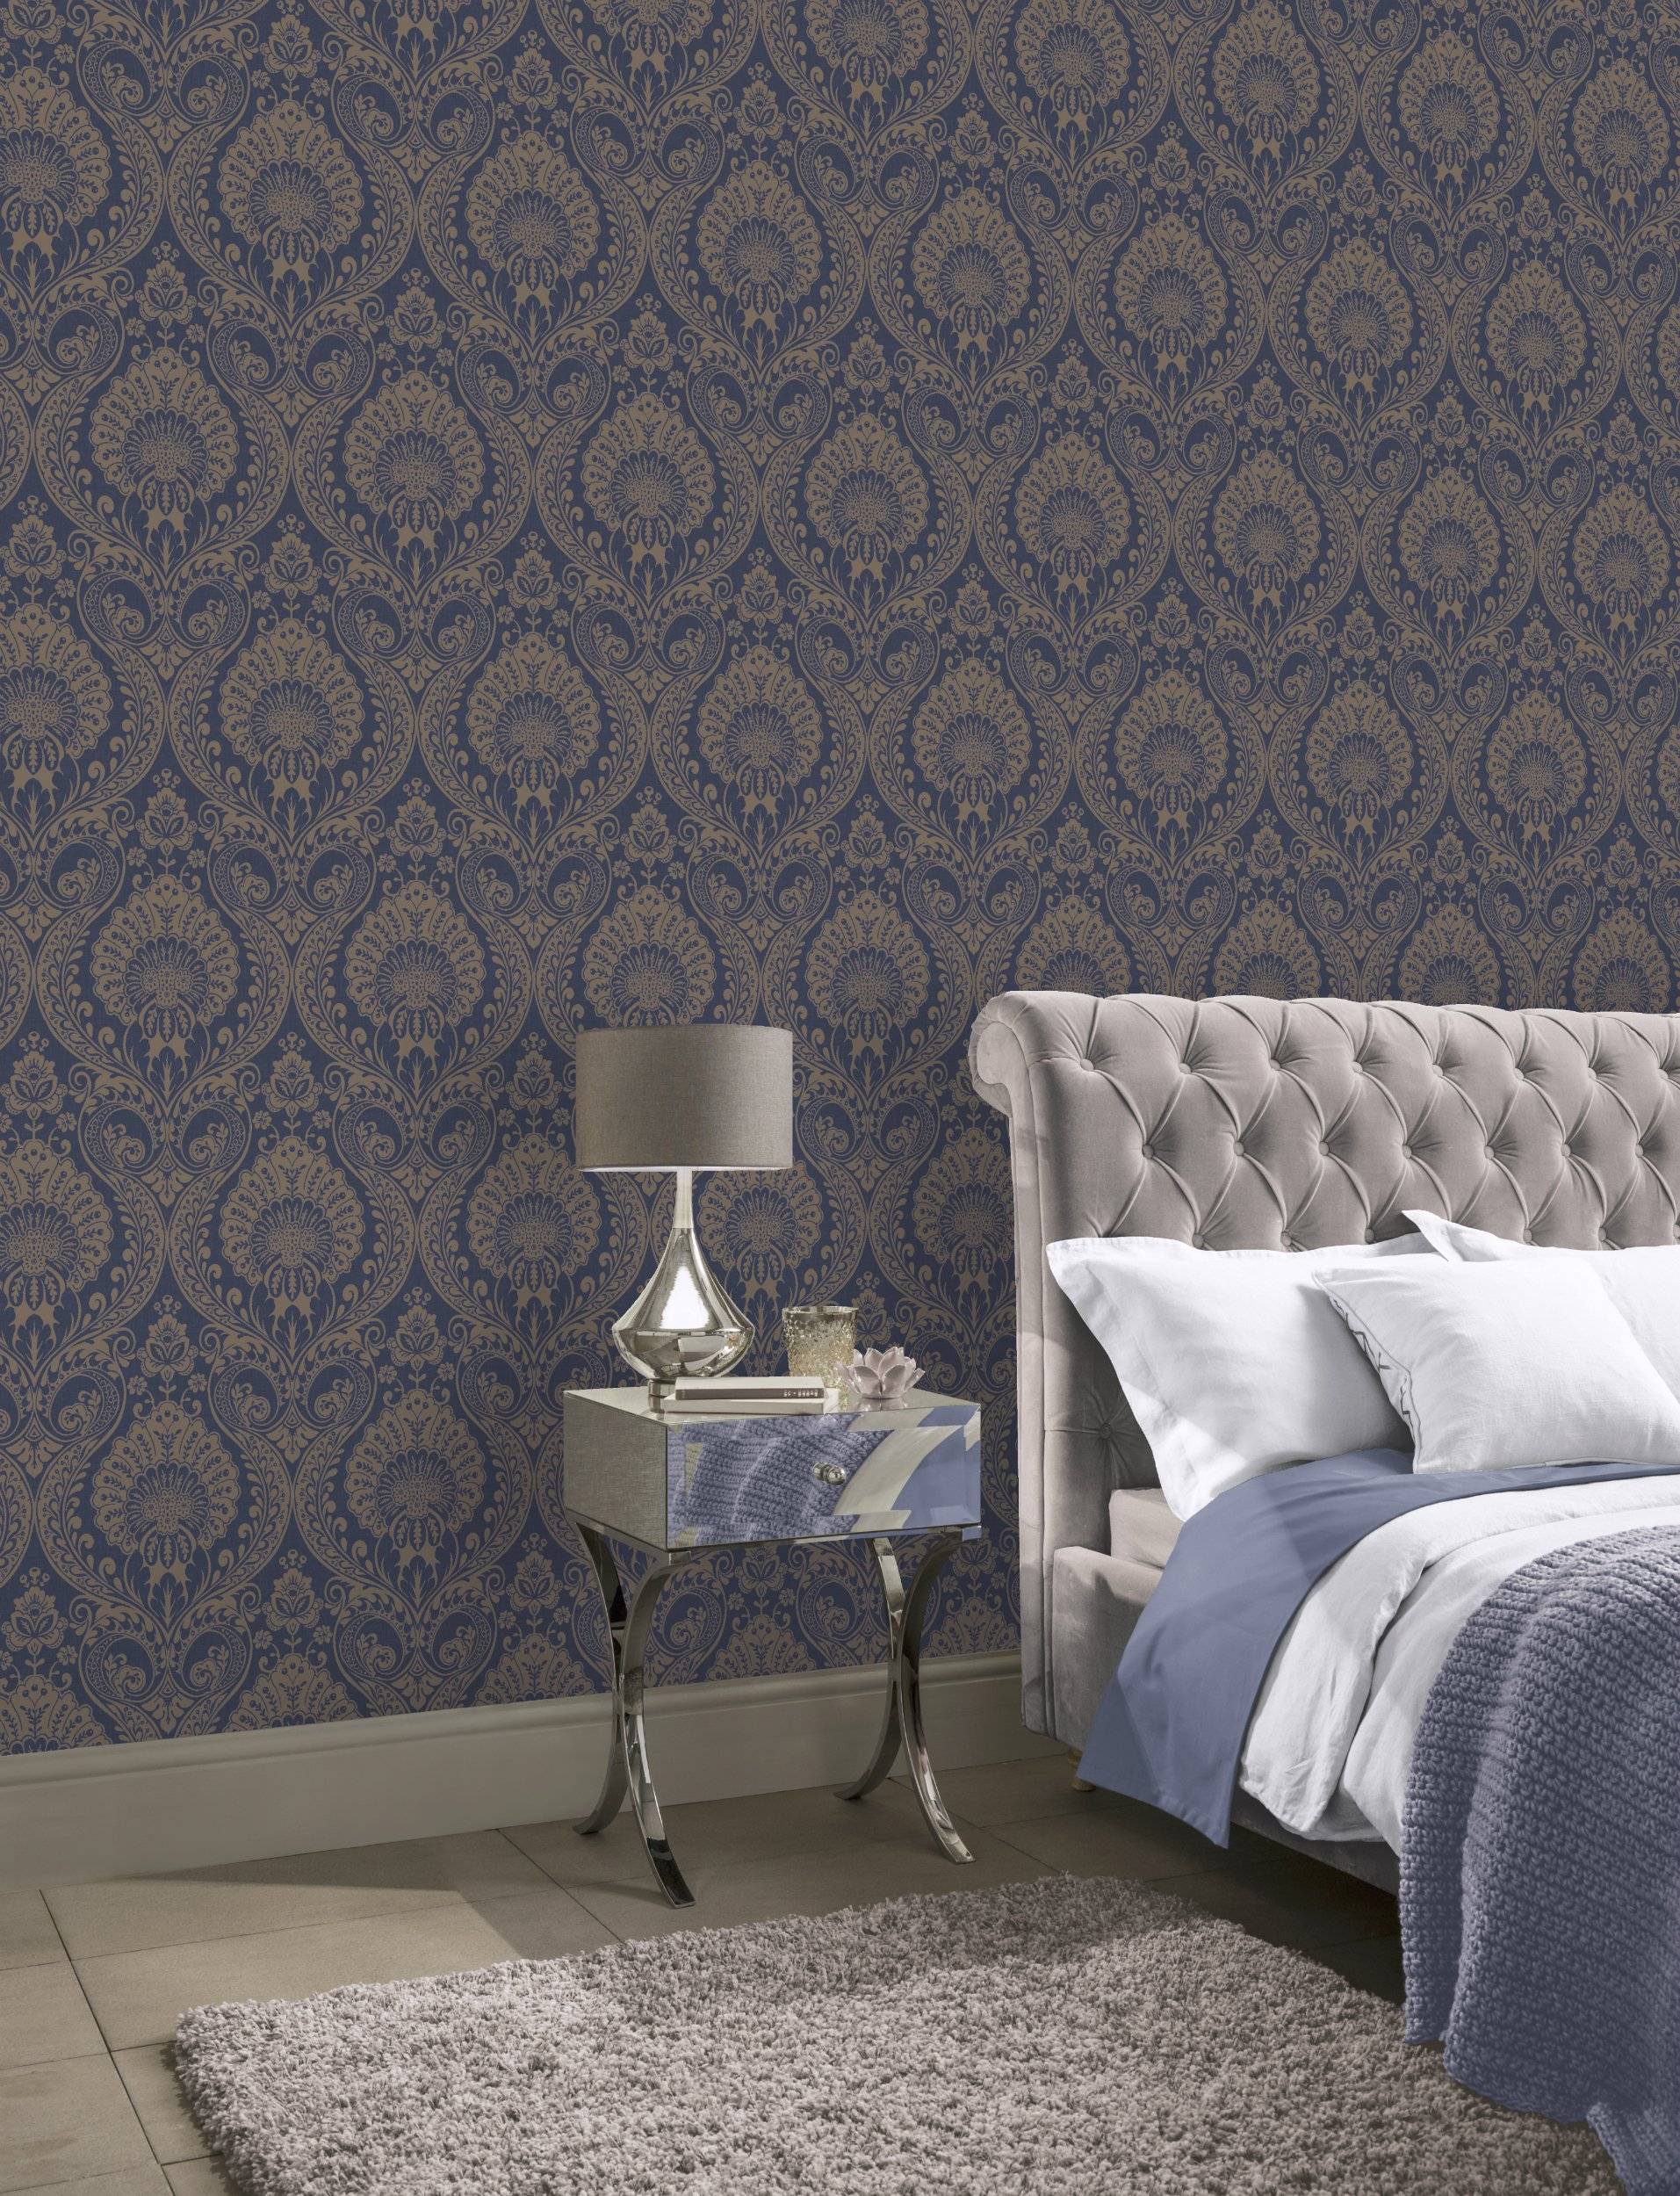 Decoris Damask Navy Gold Arthouse 910308 Wallpaper Wallpaper Sales